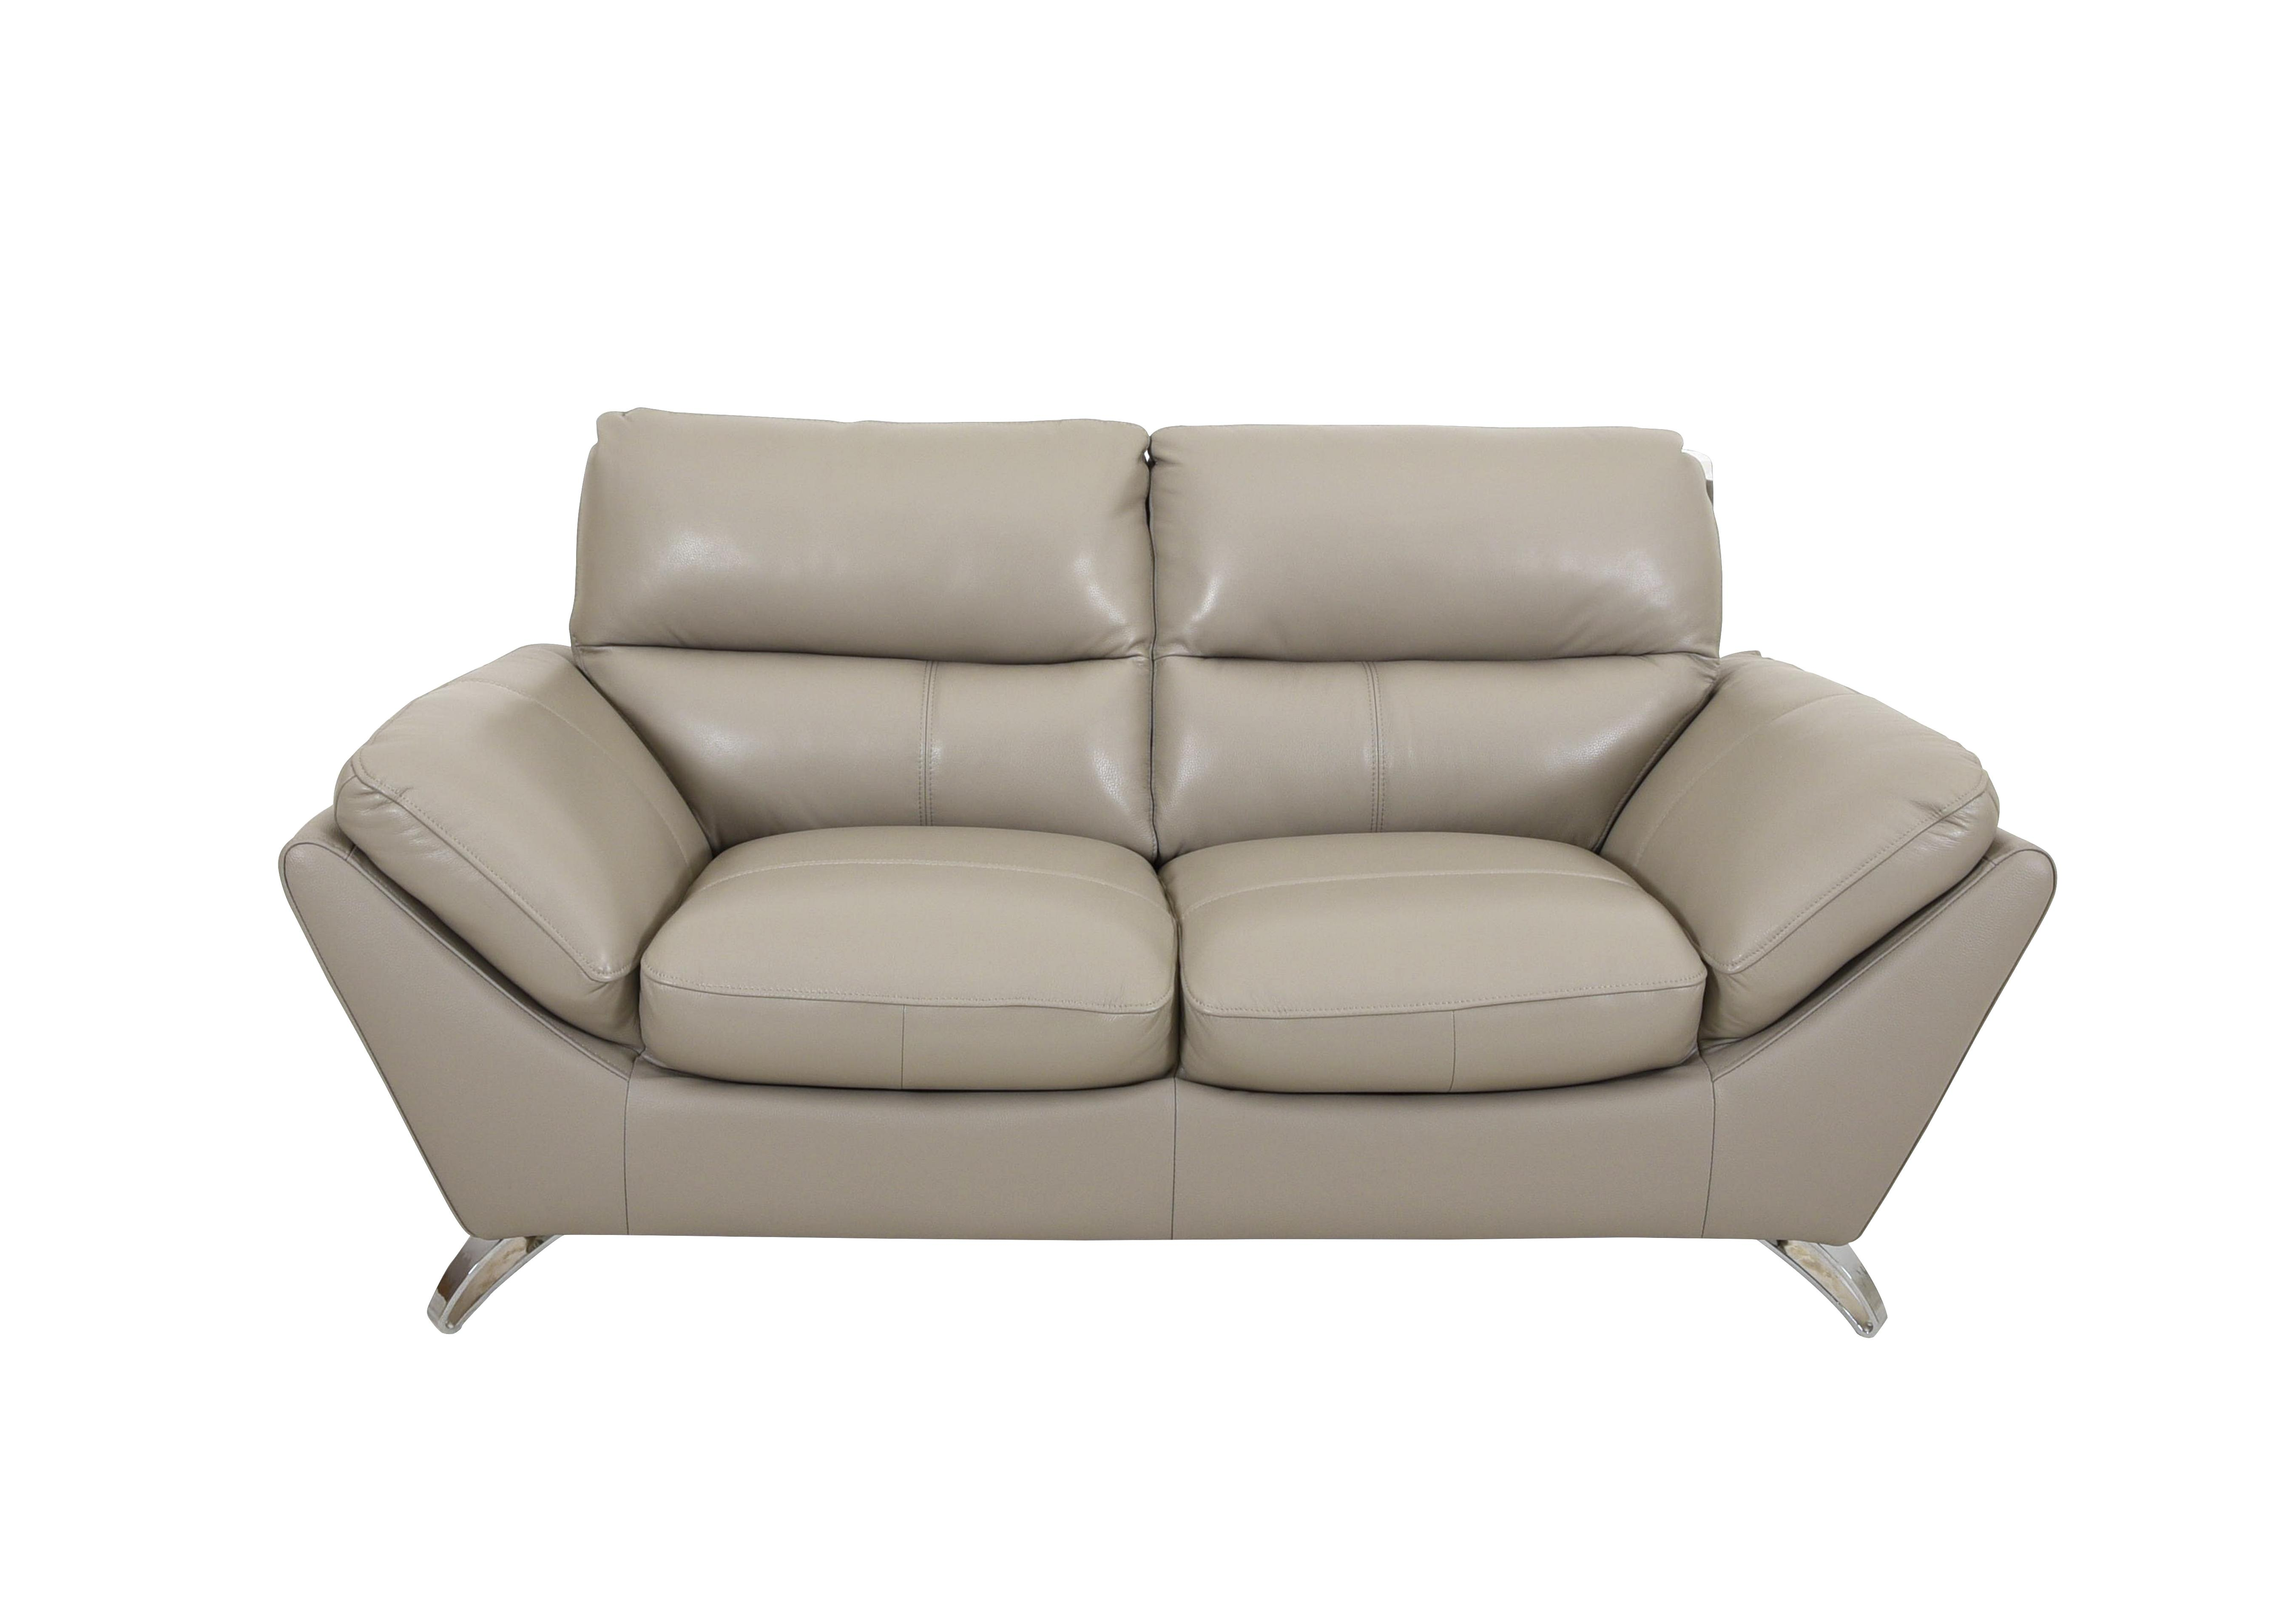 Salvador 2 Seater Leather Sofa World of Leather Furniture Village